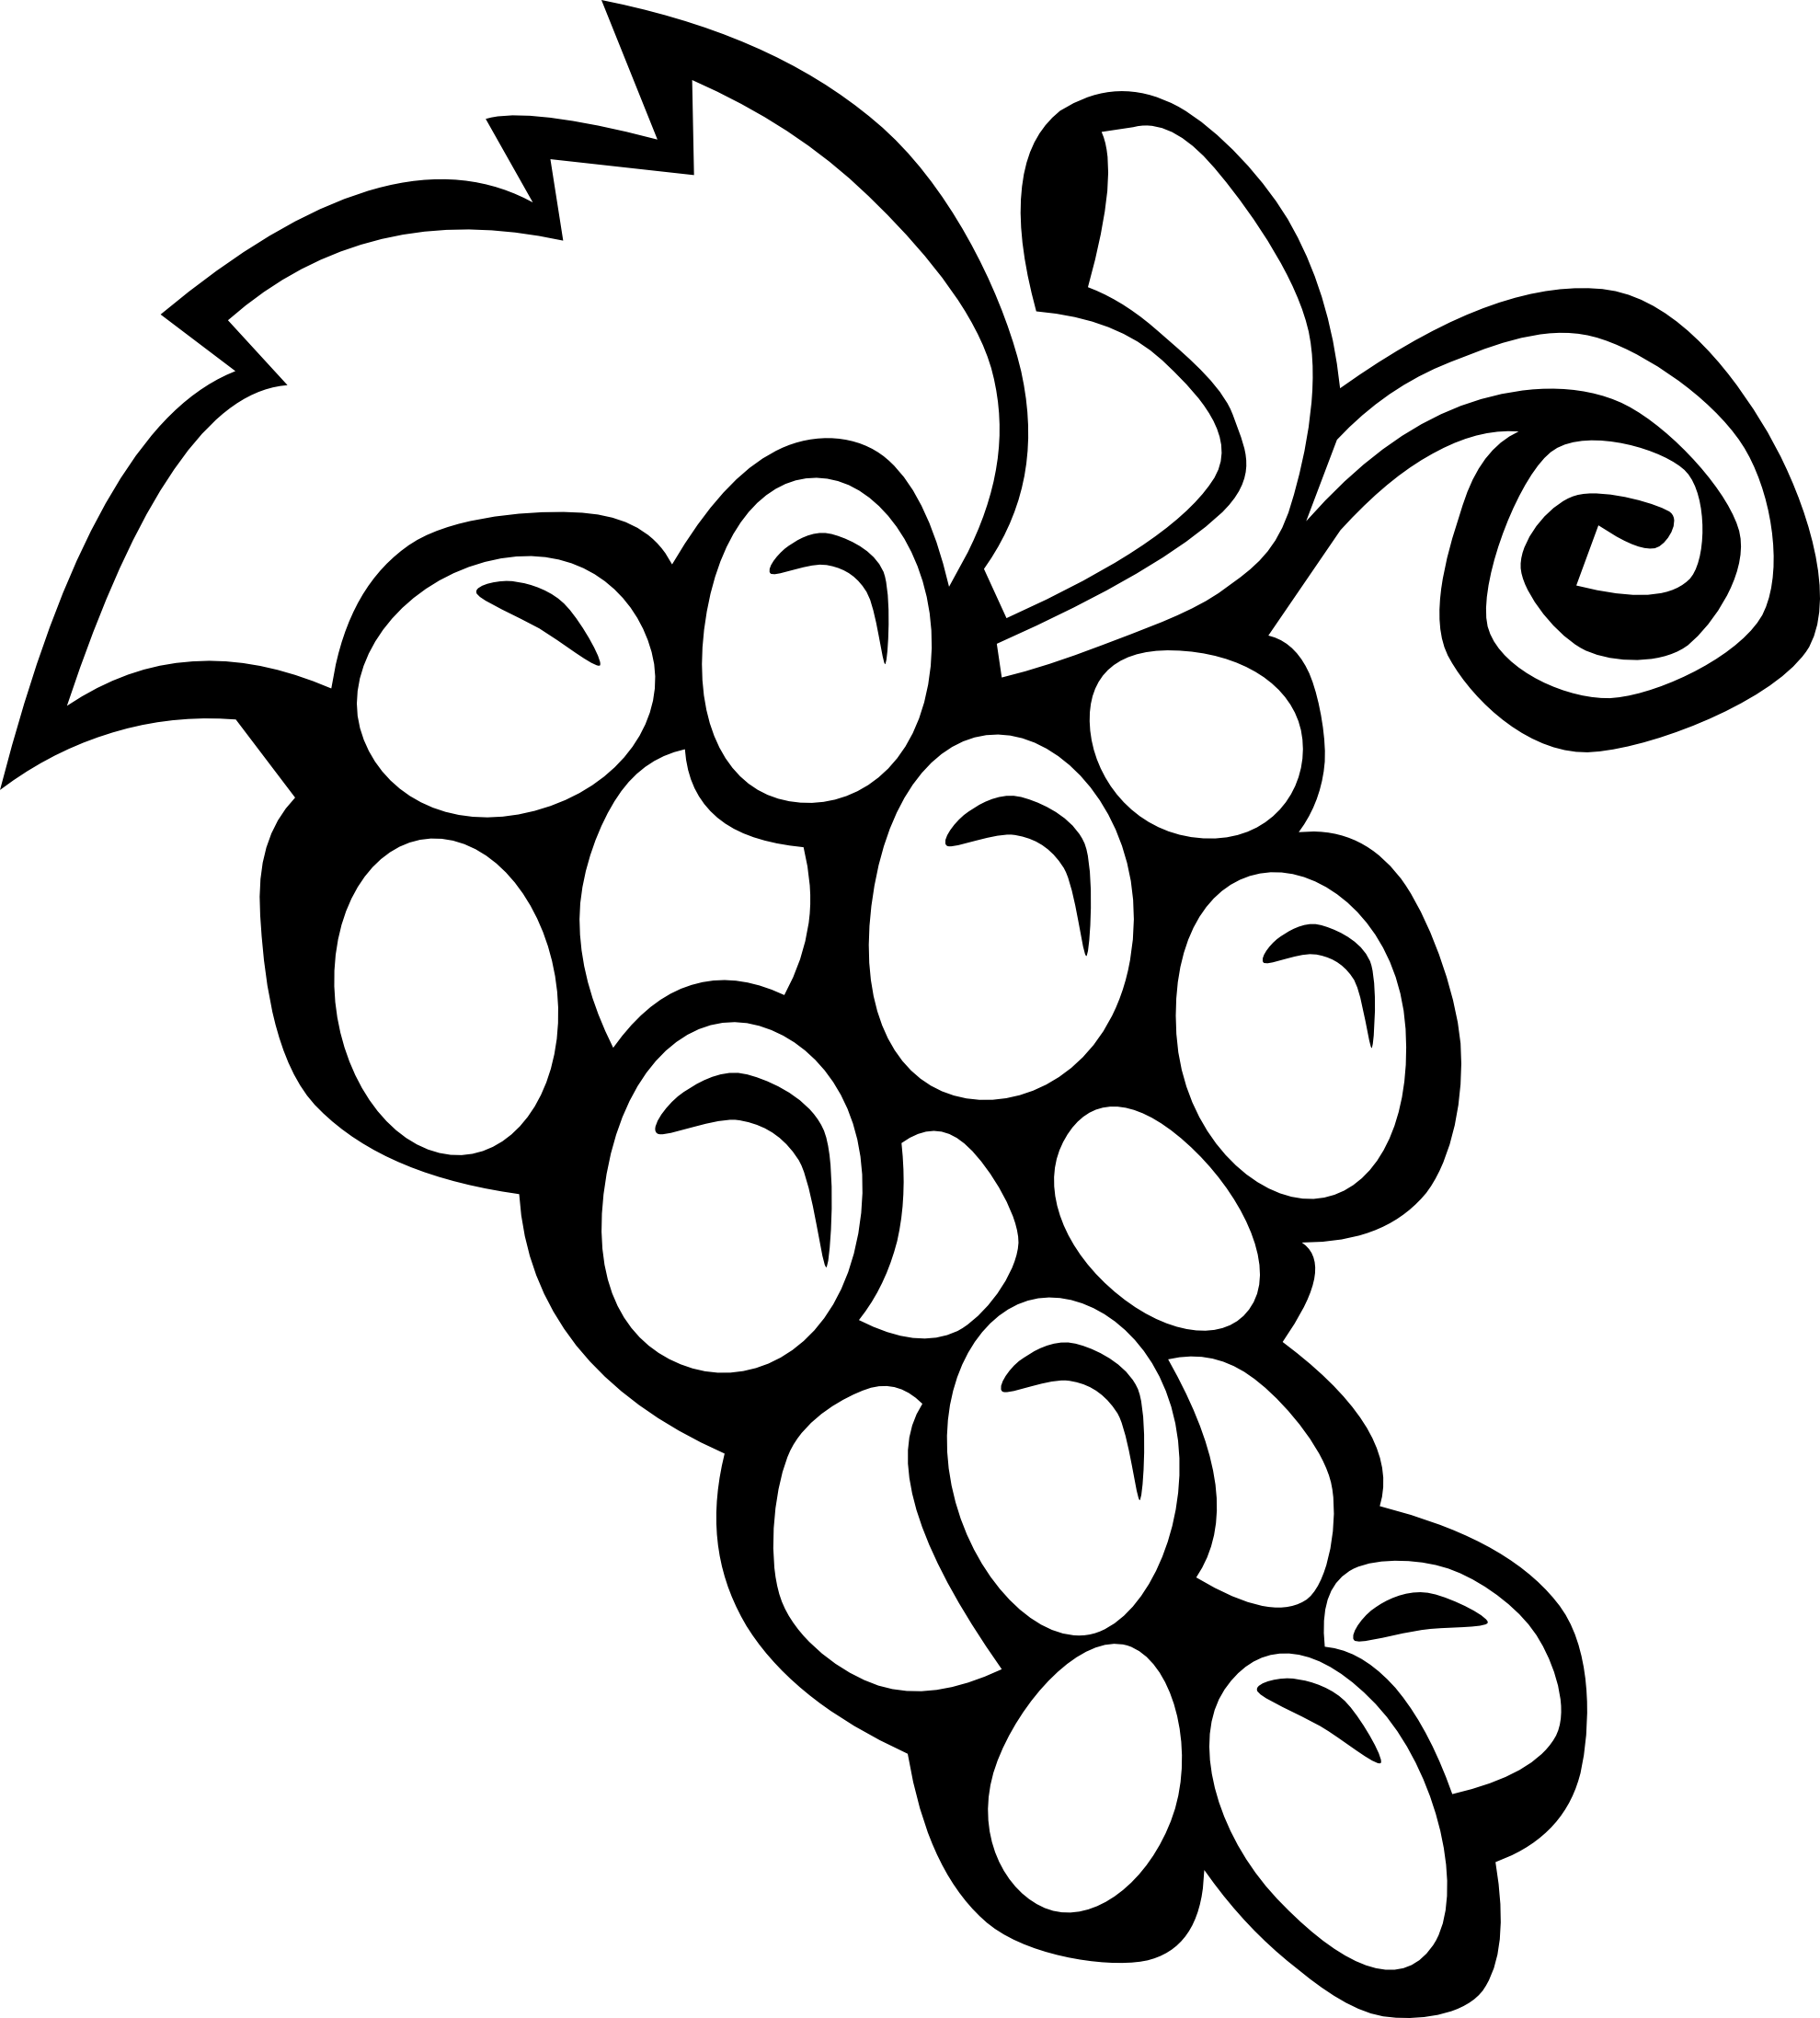 clipart free stock Vegetables clipart black and white. Fruit vegetable panda free